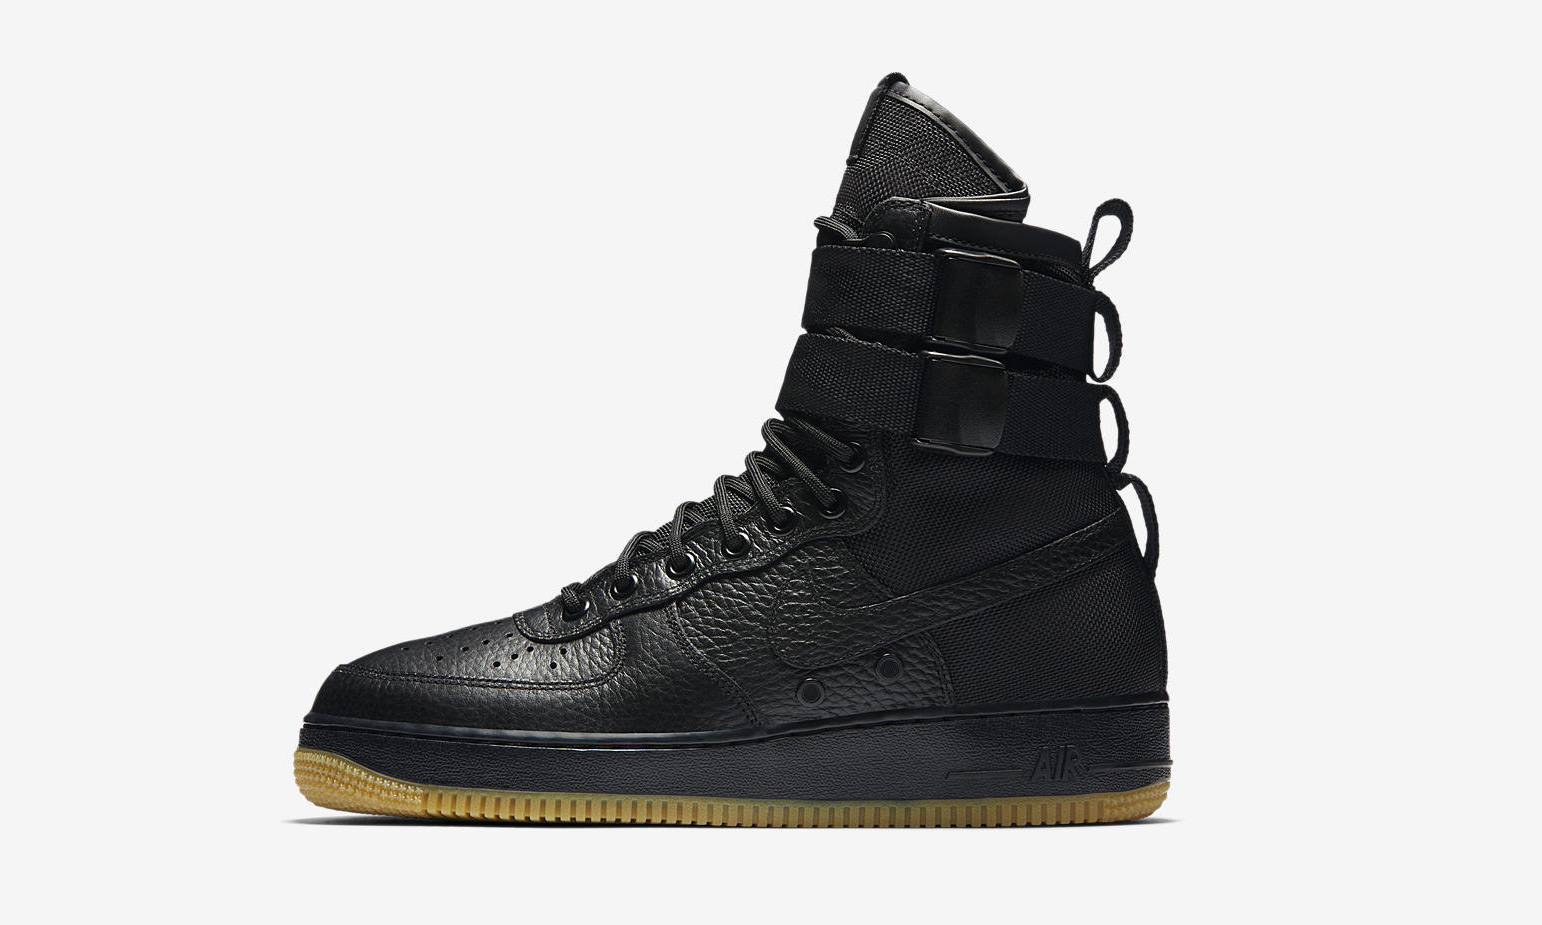 nike-special-forces-air-force-1-new-colors-4